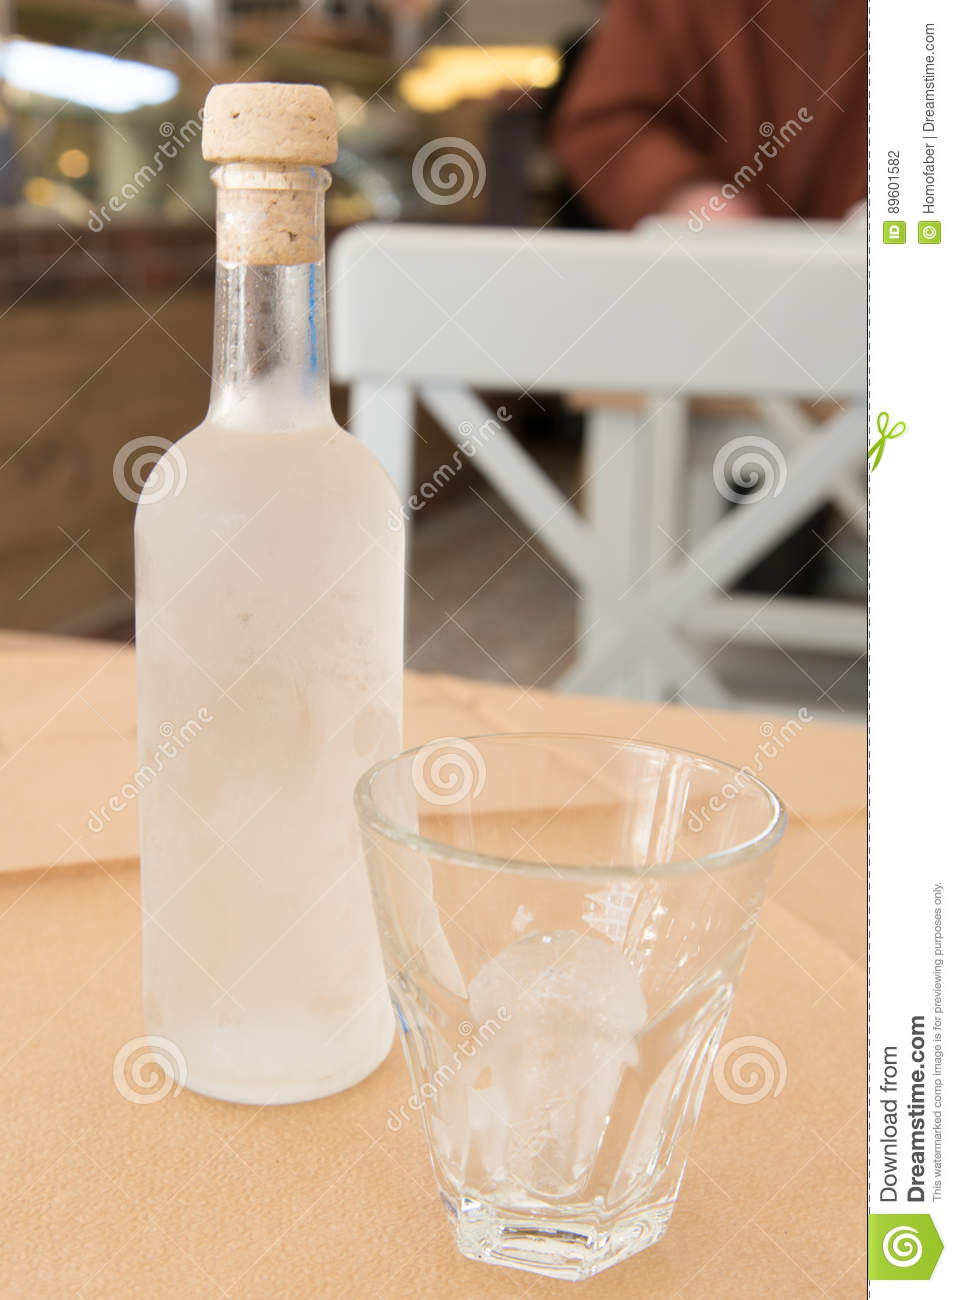 Tsipouro με ένα γυαλί με τον πάγο